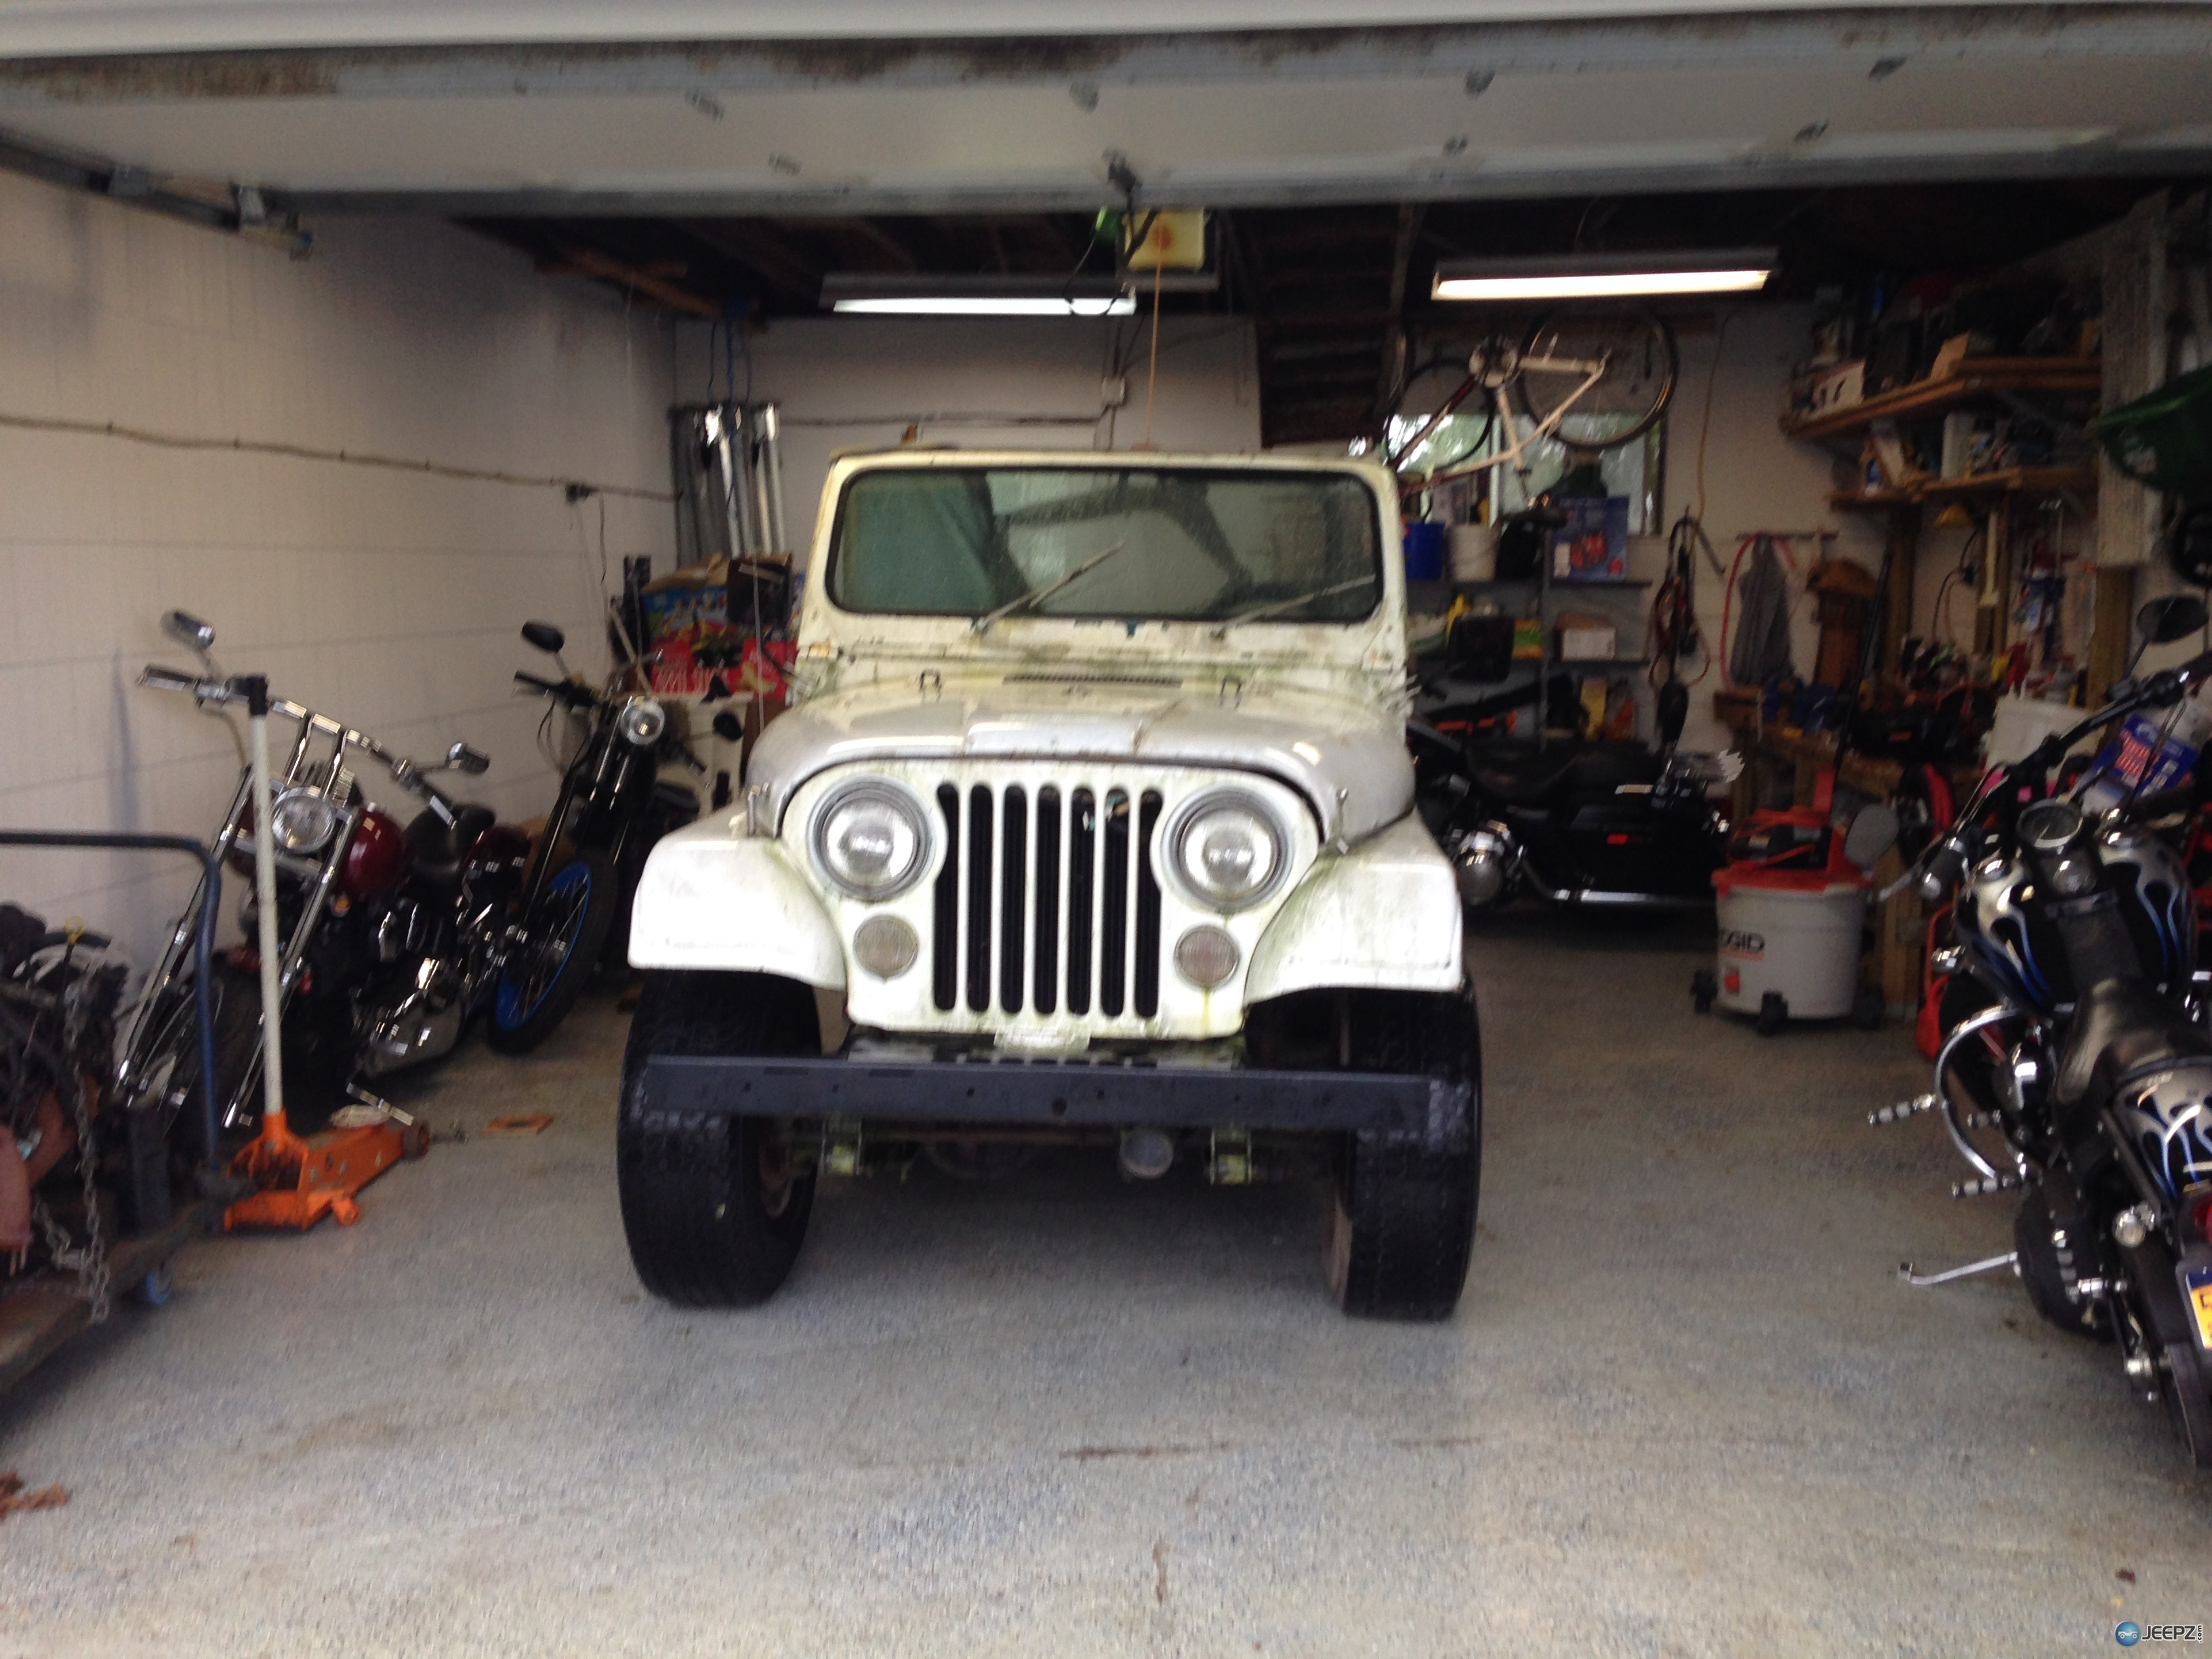 1979 cj7 quadra trac with a chevy 350 vortex motor need radiator 10